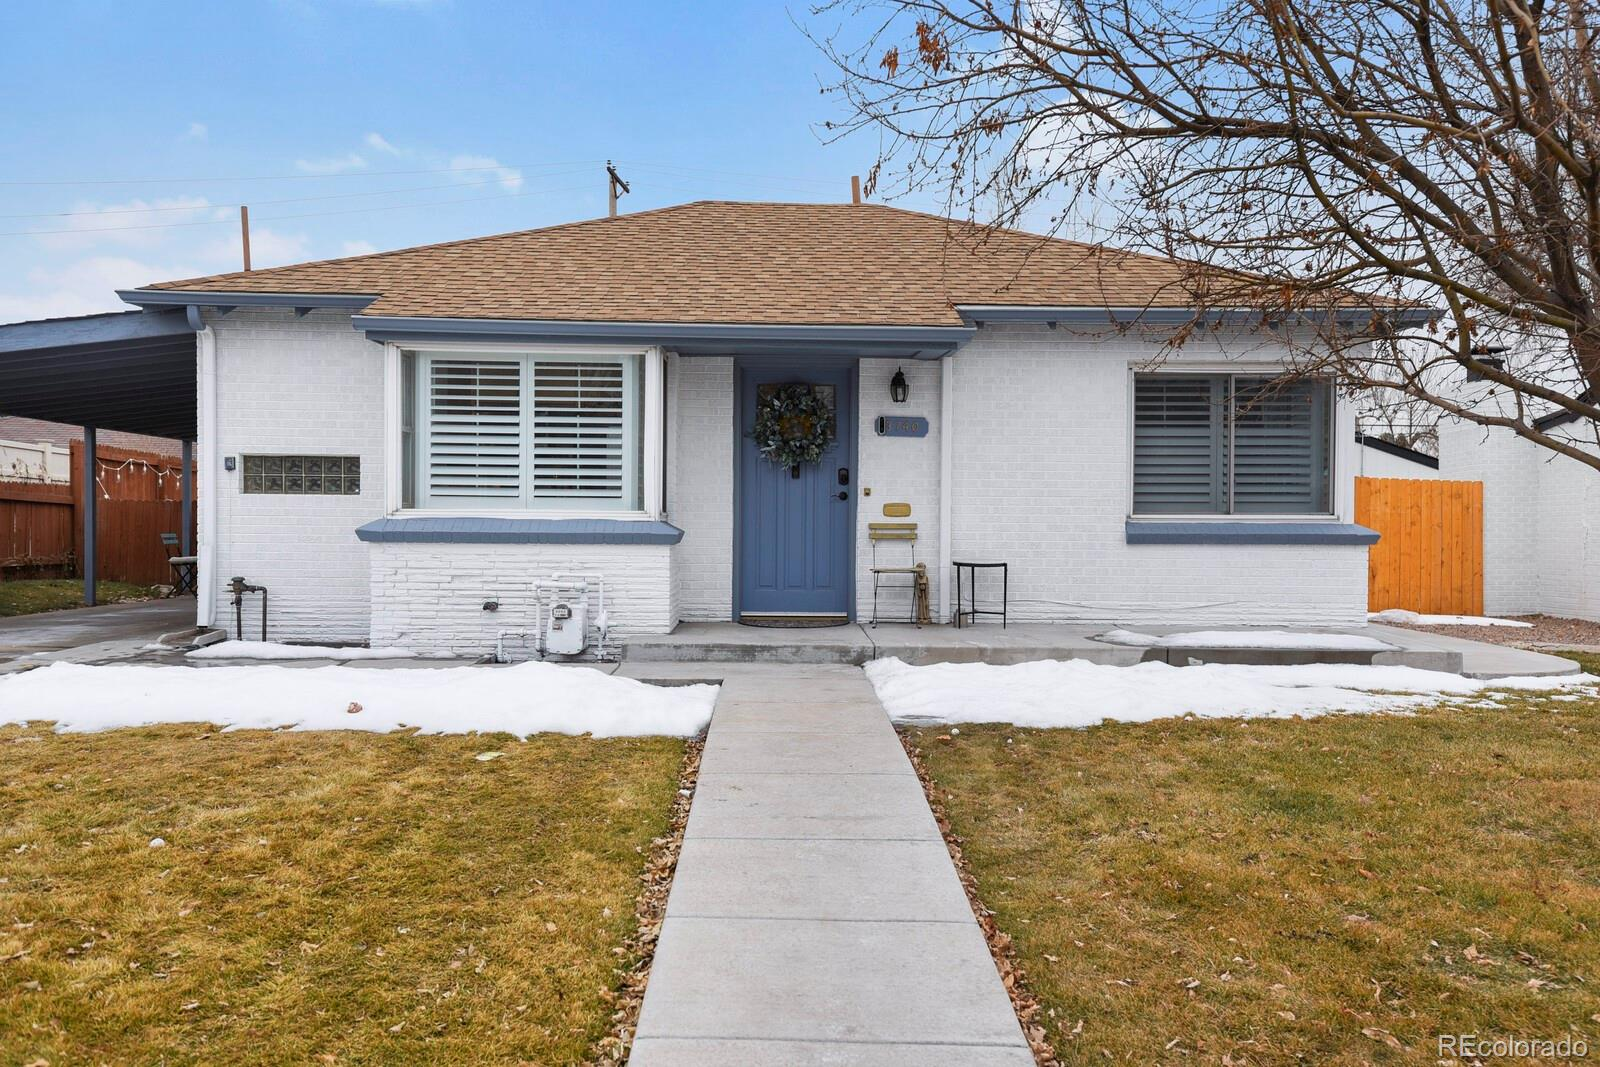 Beautifully updated house in Skyland (North City Park), situated across from the historic Clayton Campus and minutes from the best of what Denver has to offer: nightlife in LoDo, art galleries in RiNo, restaurants and shopping in Cherry Creek, and walking/biking distance to City Park, the Denver Zoo, and the Denver Museum of Nature and Science.   Originally built in 1951, this home retains some mid-century vintage features, including the original metal mail slot, hardwood floors, coved ceiling, arched entryway to the bedrooms, plaster walls, and milk delivery door.   Outside, enjoy a beautifully landscaped and fenced oversized yard with a custom brick patio, five irrigated garden plots, and newer poured concrete porch. The exterior boasts new gutters, new paint, automatic sprinklers in the front and back yards, a storage shed, and carport with a side entrance to the house. Inside, enjoy the views through oversized windows with new plantation shutters while granite countertops, recessed lights, and a finished basement with new gas line, two bedrooms, large remodeled bathroom, family room, and laundry room with Samsung appliances complete the package.